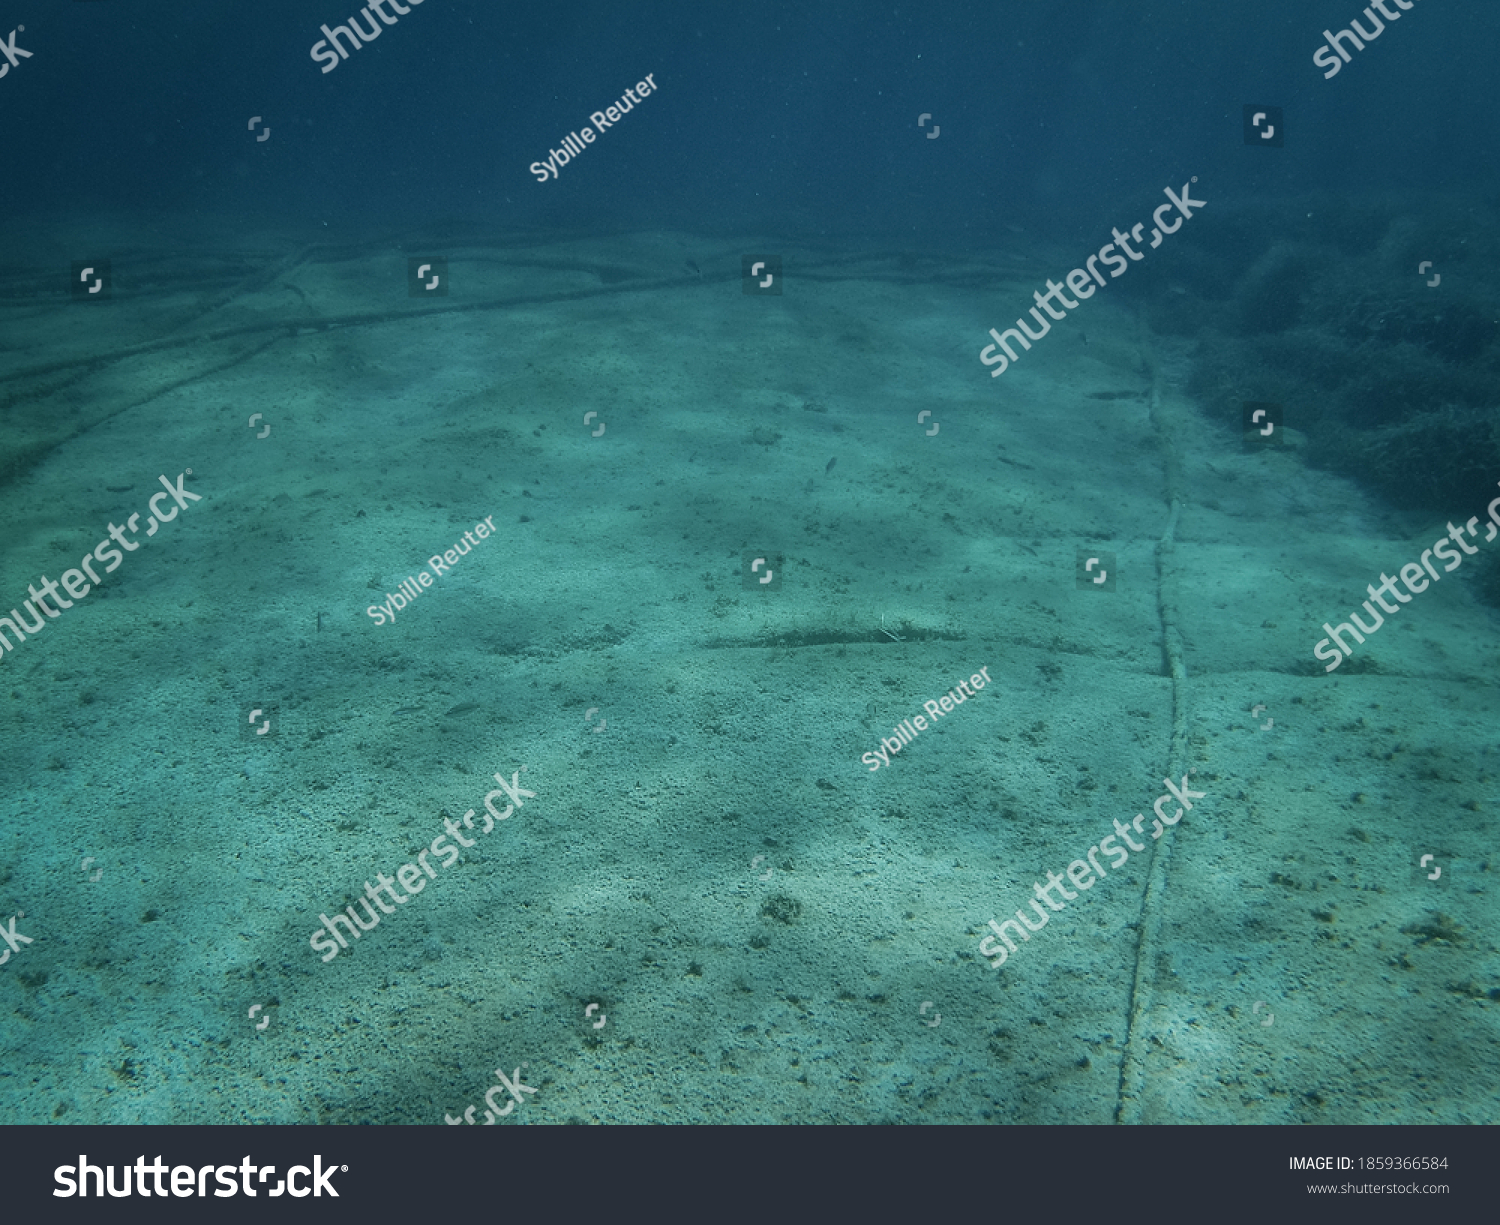 stock-photo-underwater-cables-on-the-oce